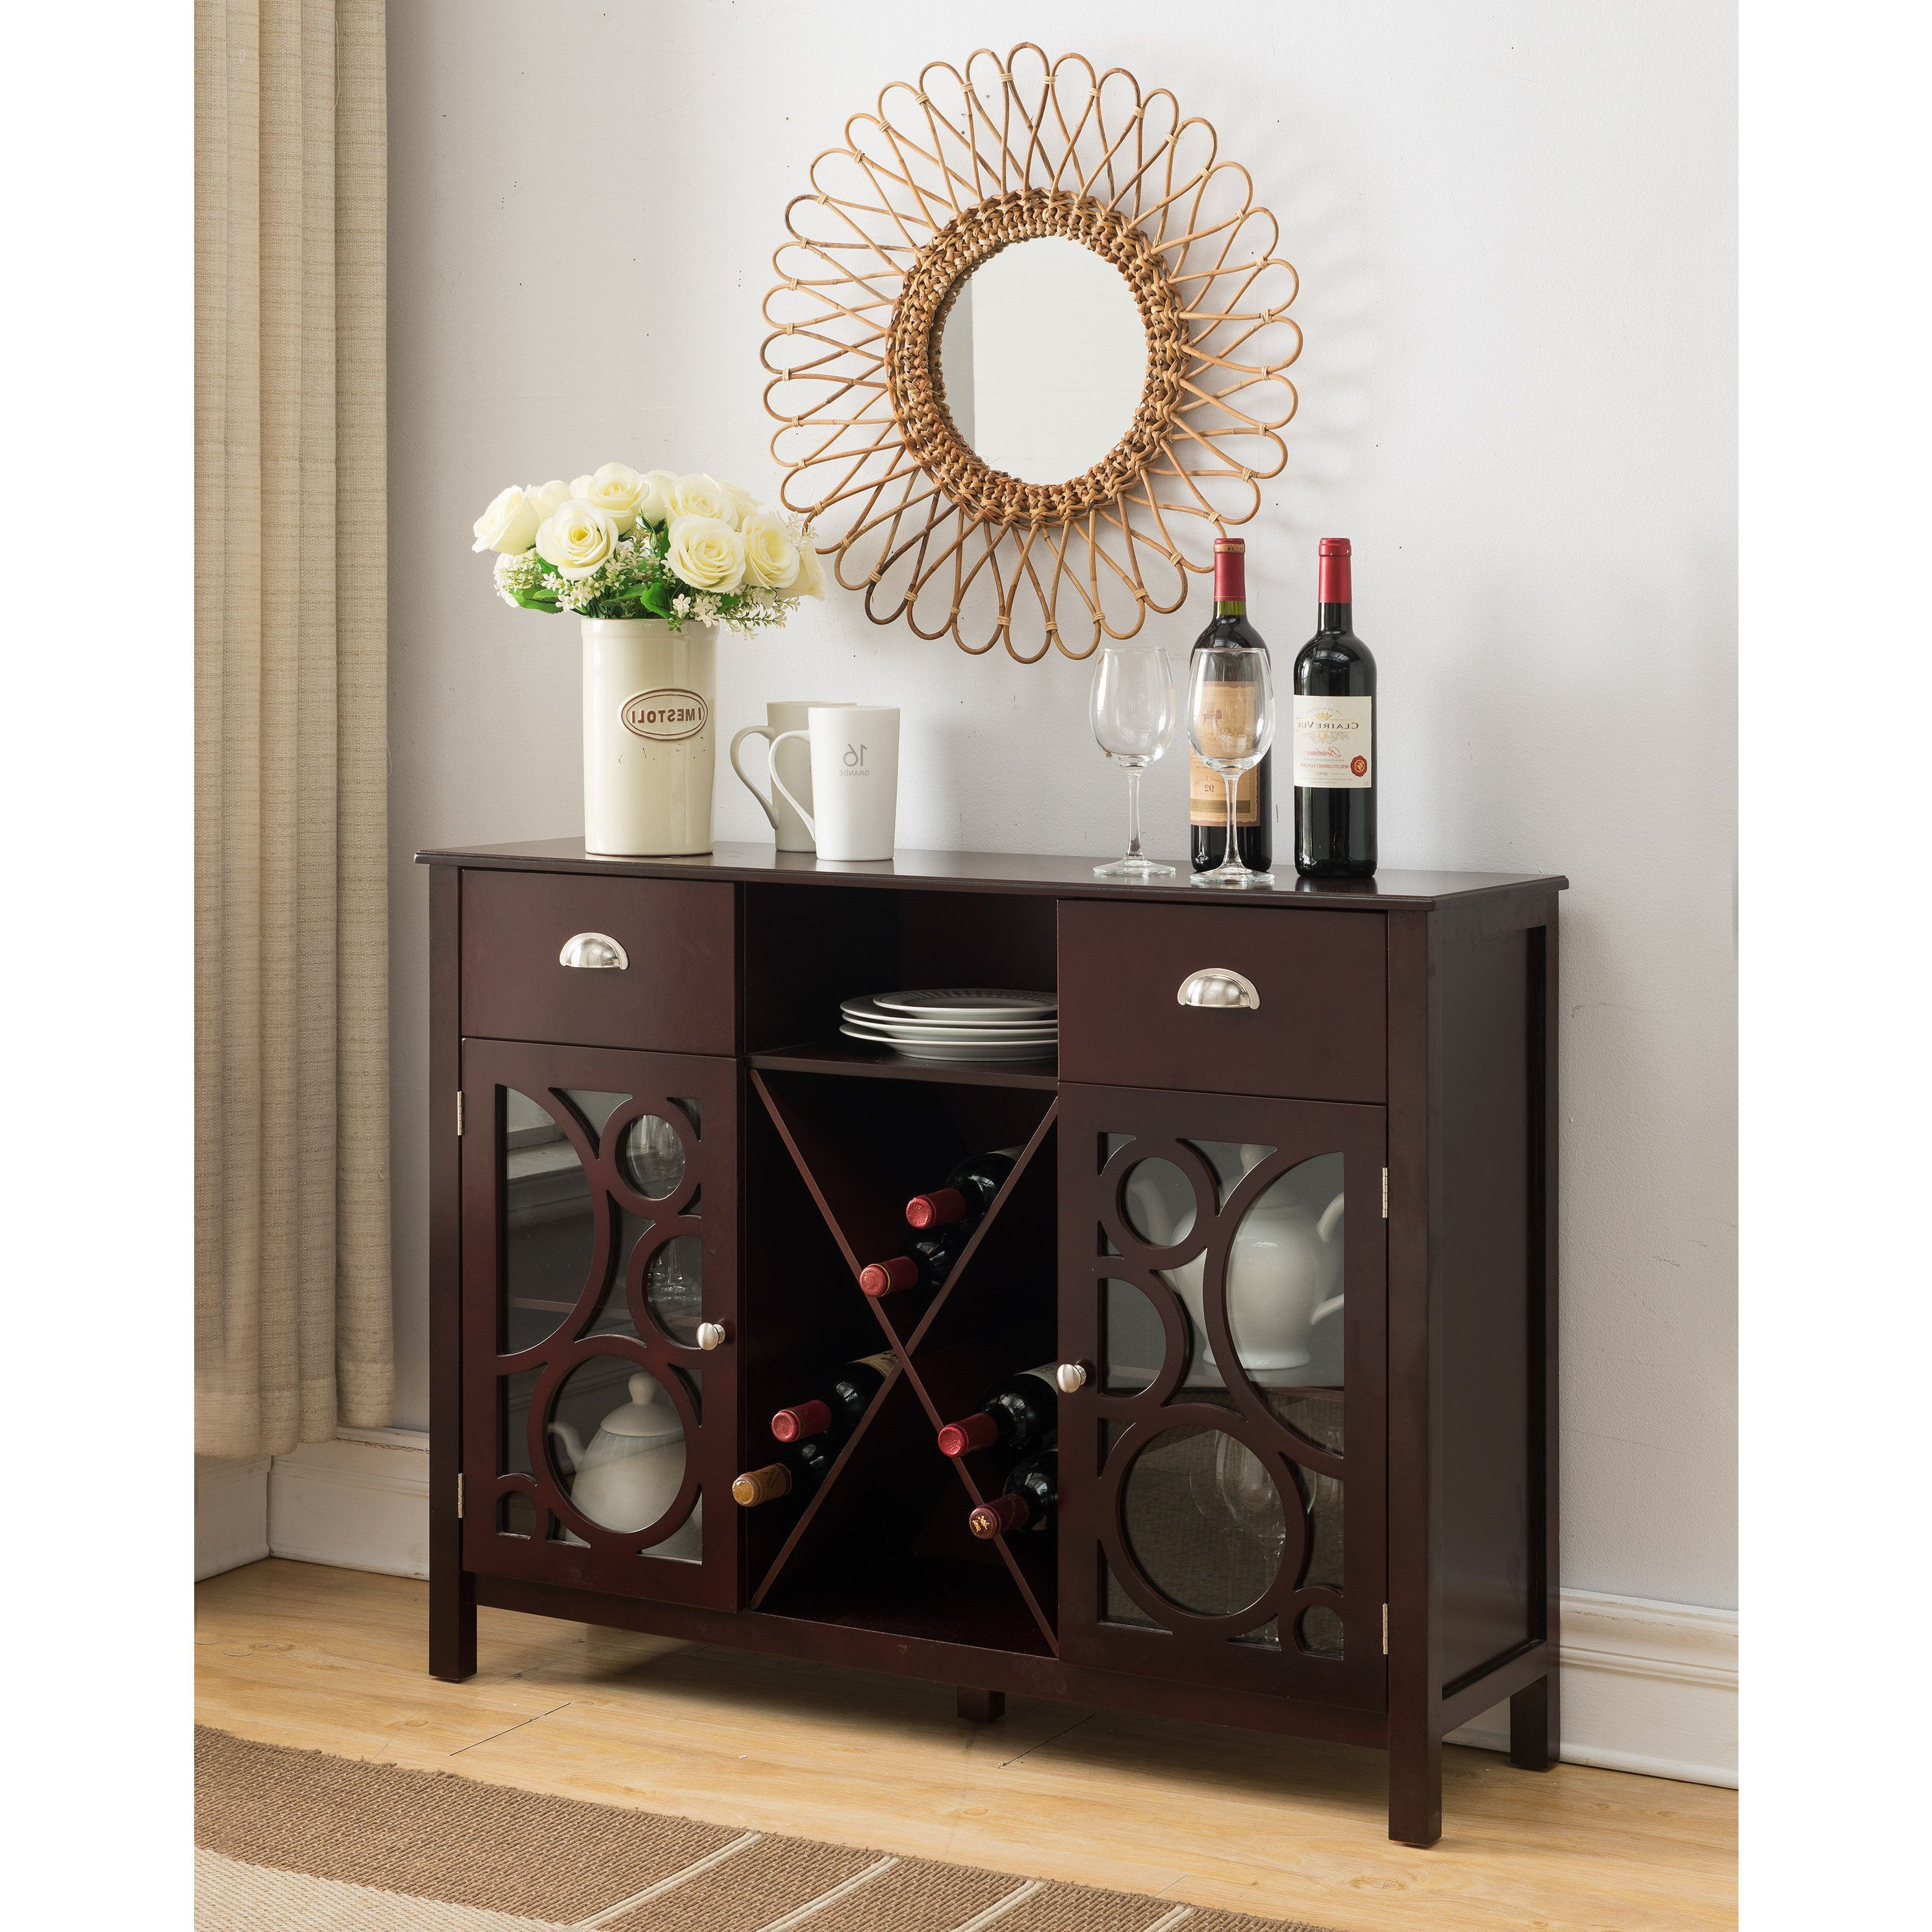 K And B Furniture Co Inc Dark Cherry Wood Storage Wine Throughout Buffets With Bottle And Glass Storage (View 9 of 20)